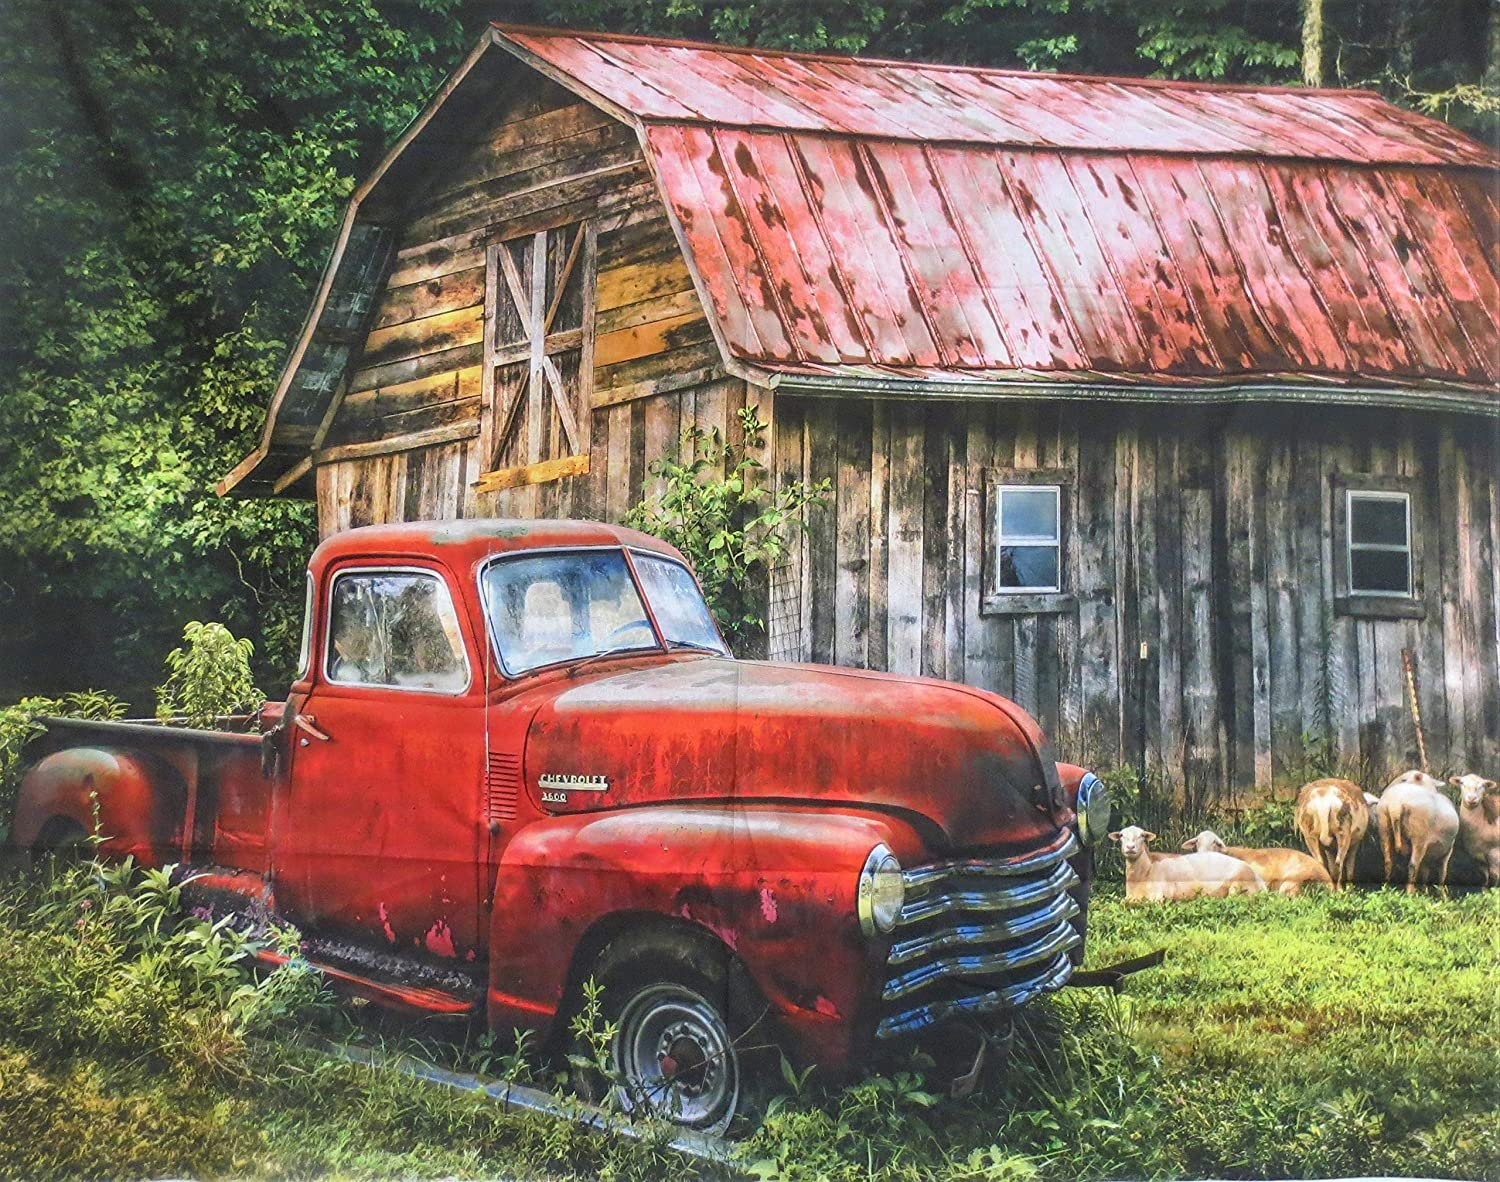 Truck at the Barn - AL 3718 8C